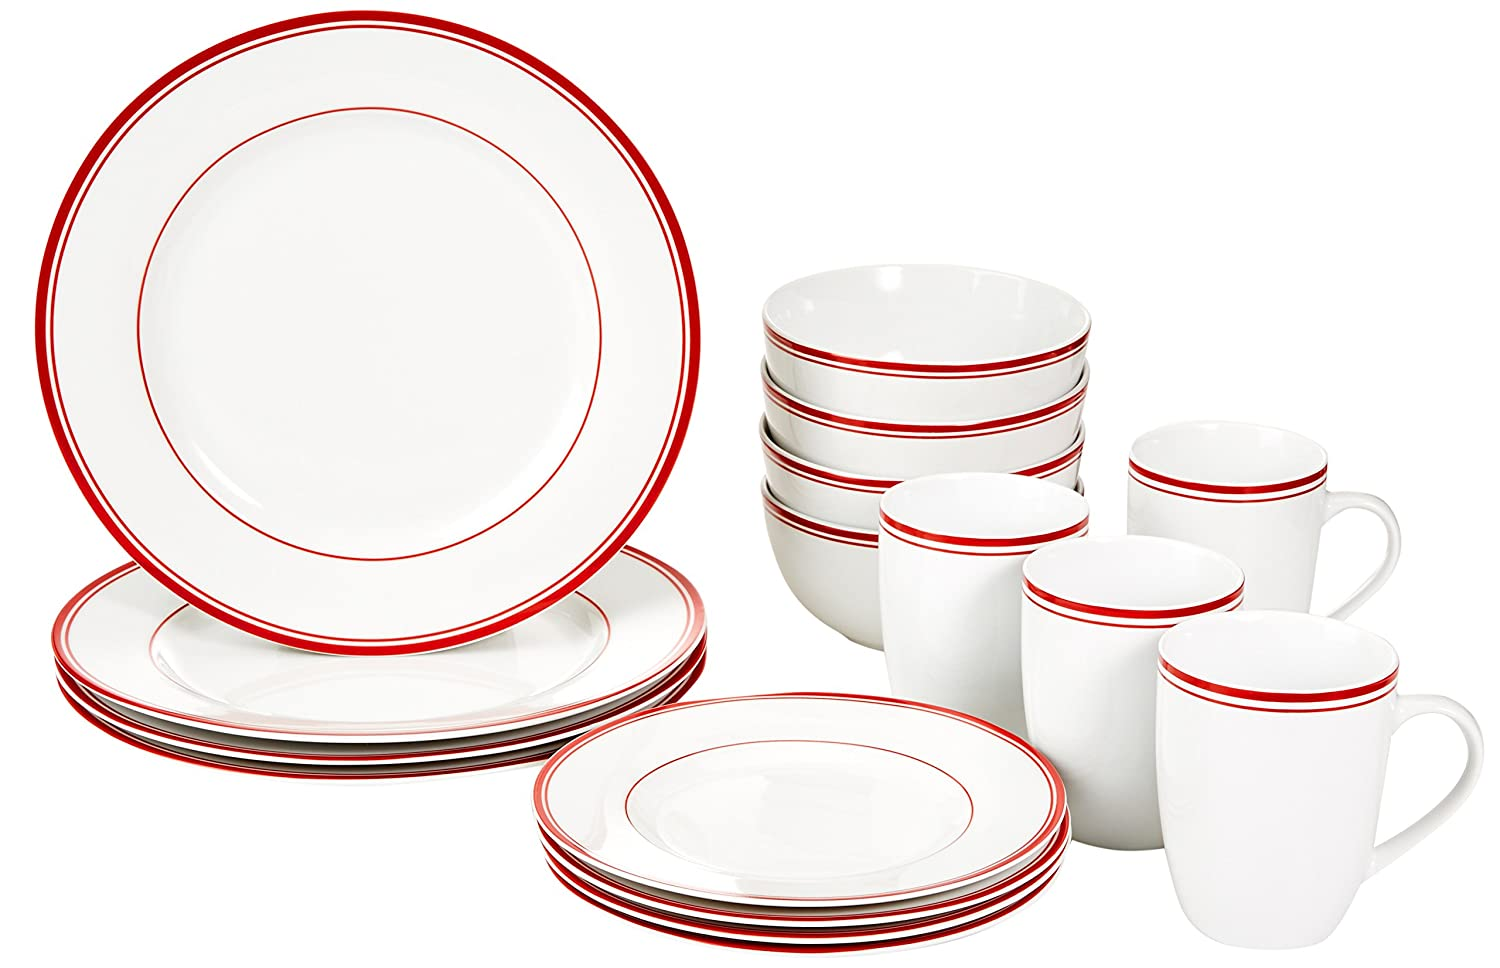 Amazon.com AmazonBasics 16-Piece Cafe Stripe Dinnerware Set Service for 4 - Red Kitchen u0026 Dining  sc 1 st  Amazon.com & Amazon.com: AmazonBasics 16-Piece Cafe Stripe Dinnerware Set ...